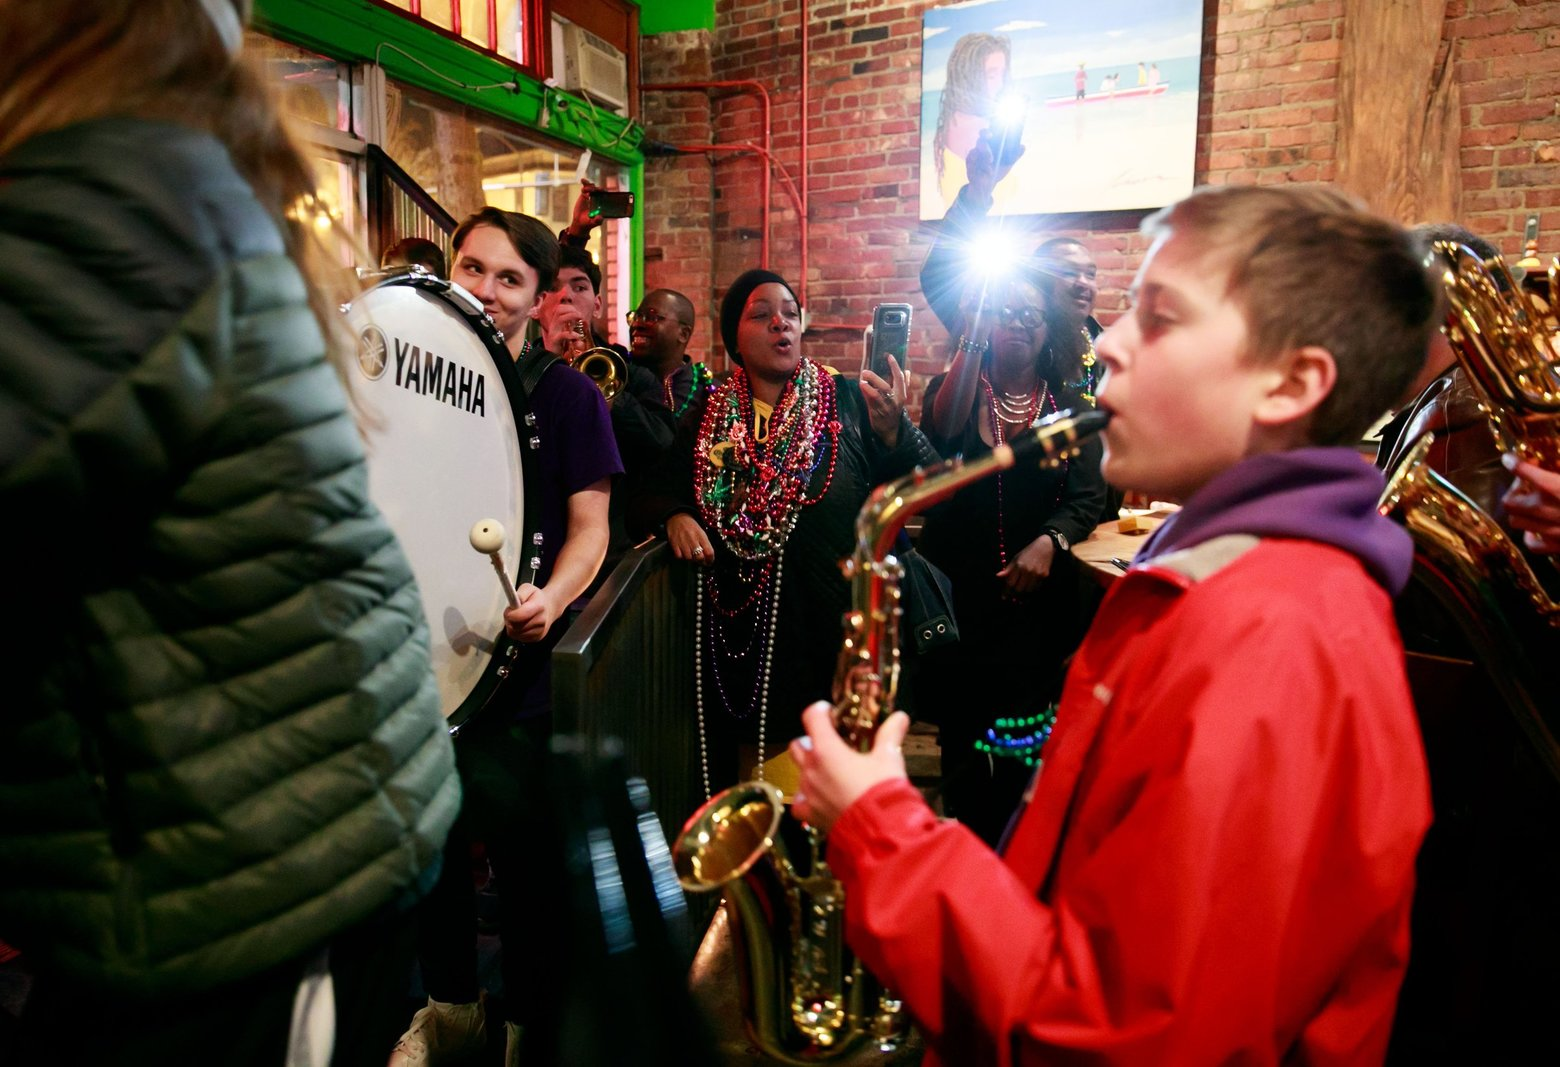 Columbia City Beatwalk lead organizer Tish Gallow, center, cheers on the Garfield High School Marching Band during 2018's Fat Tuesday edition of the longstanding neighborhood music crawl.